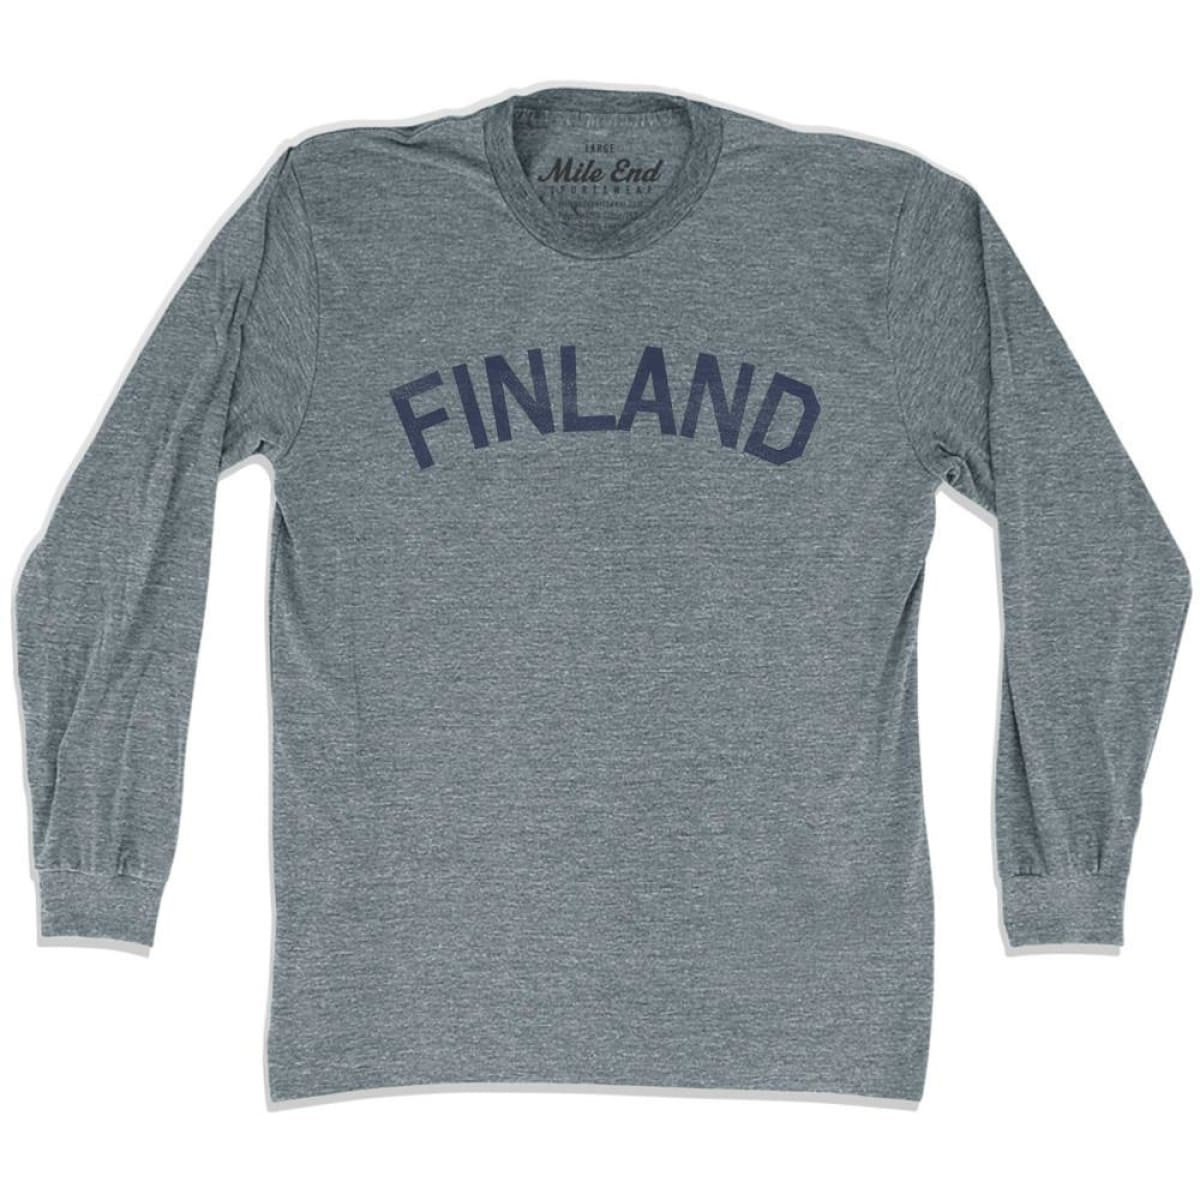 Finland City Vintage Long Sleeve T-shirt - Athletic Grey / Adult X-Small - Mile End City